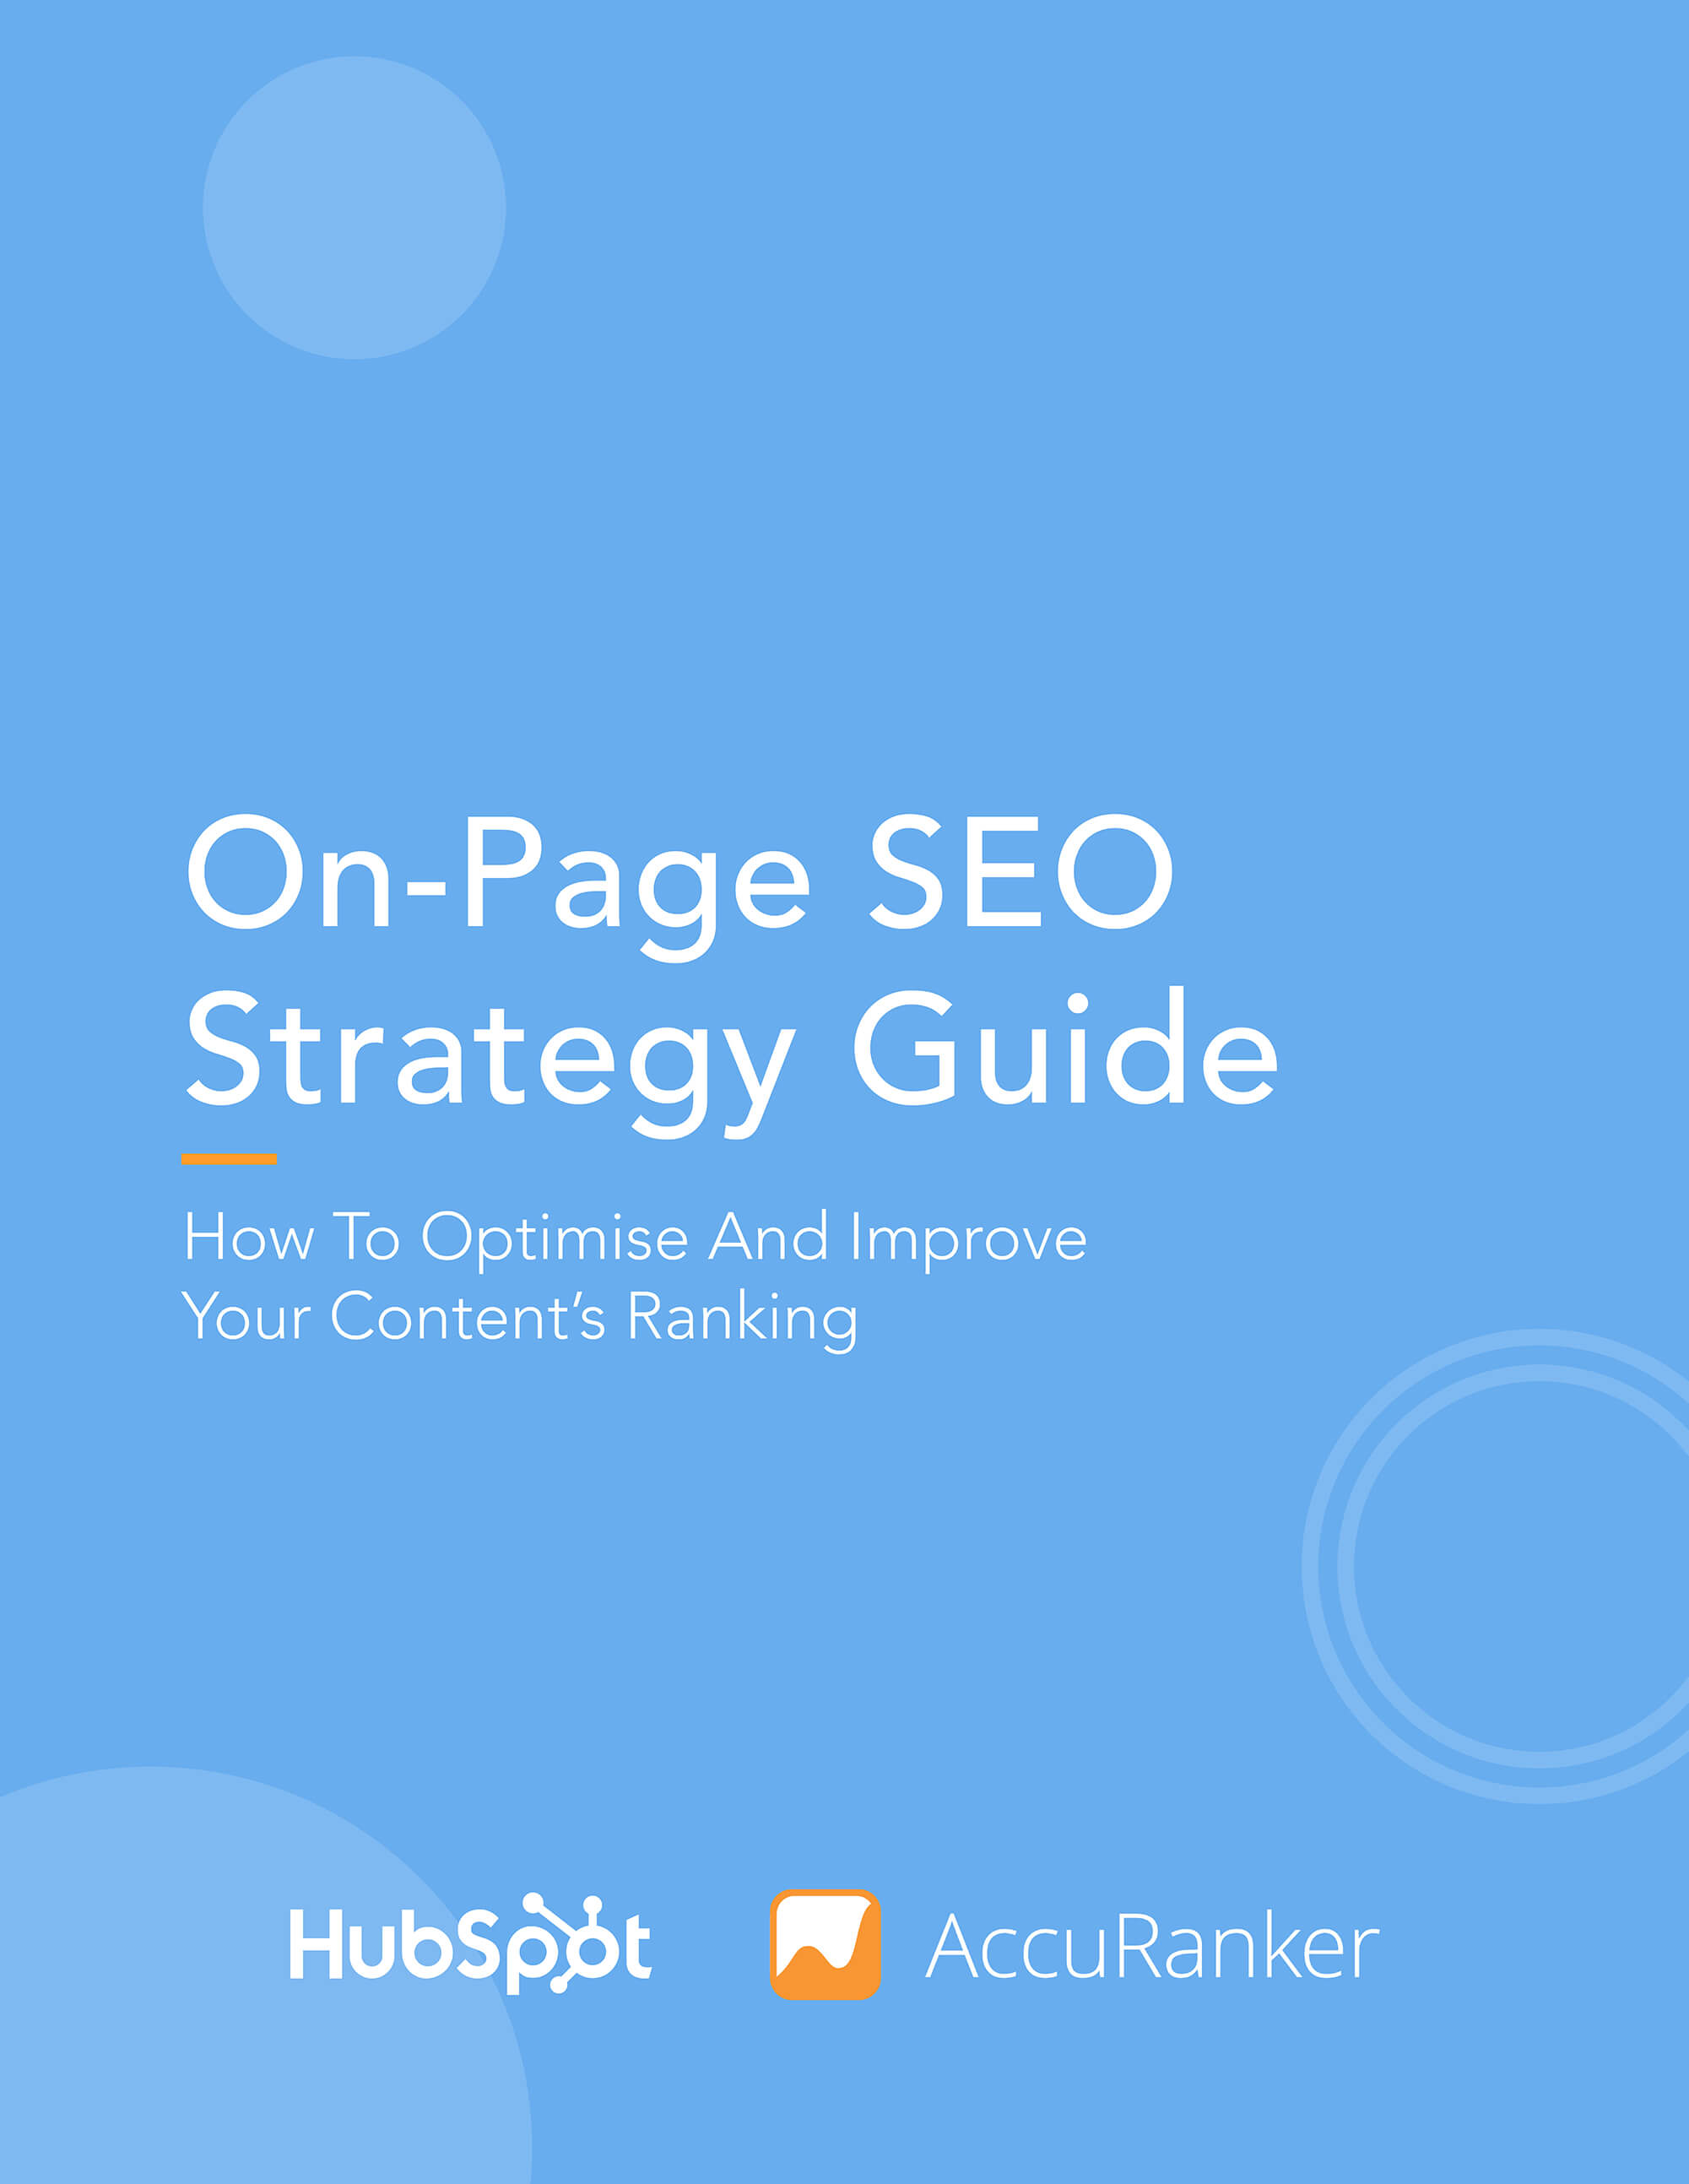 On-Page SEO Strategy Guide 1